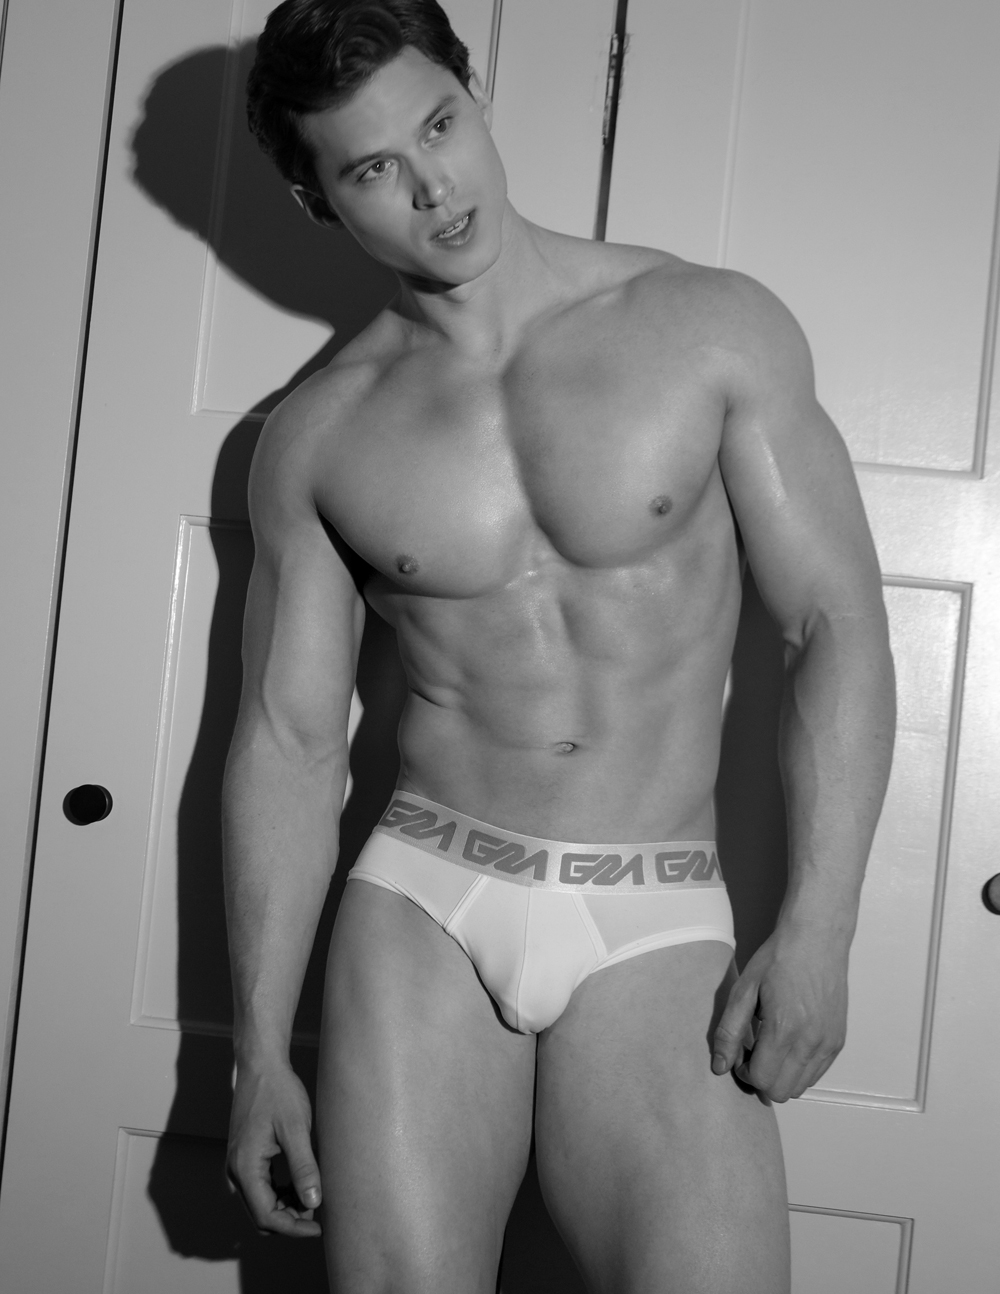 model-matt-waters-photogrpahed-by-marco-ovando-for-garc%cc%a7on-model-underwear-6